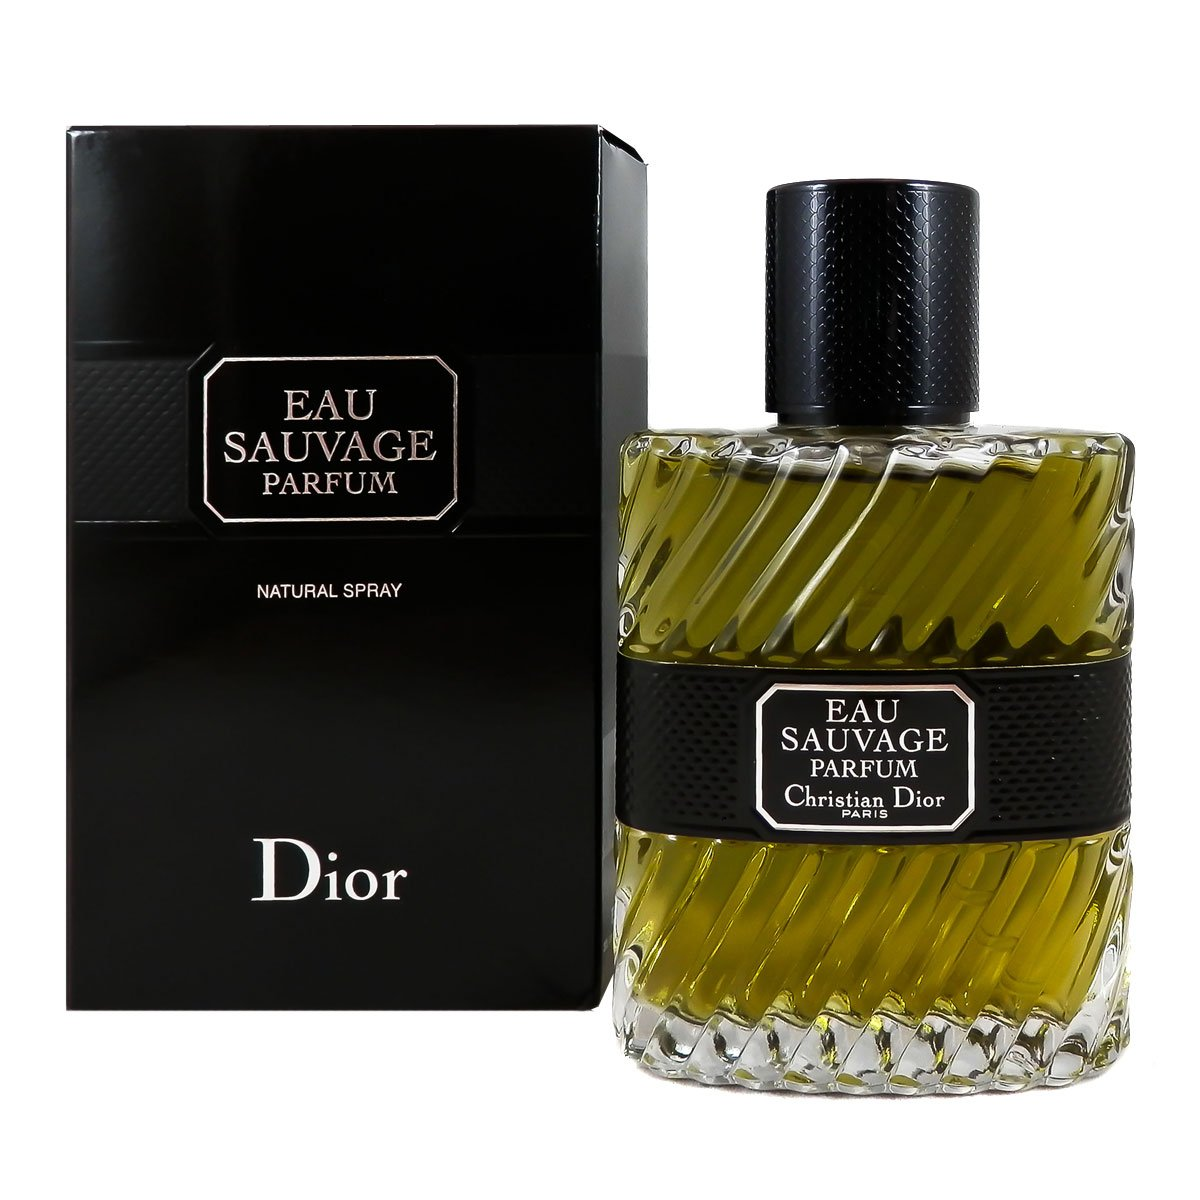 Christian Dior Eau Sauvage Parfum Eau de Parfum For Him - 100 ml 229674 17000-69830_-100ml